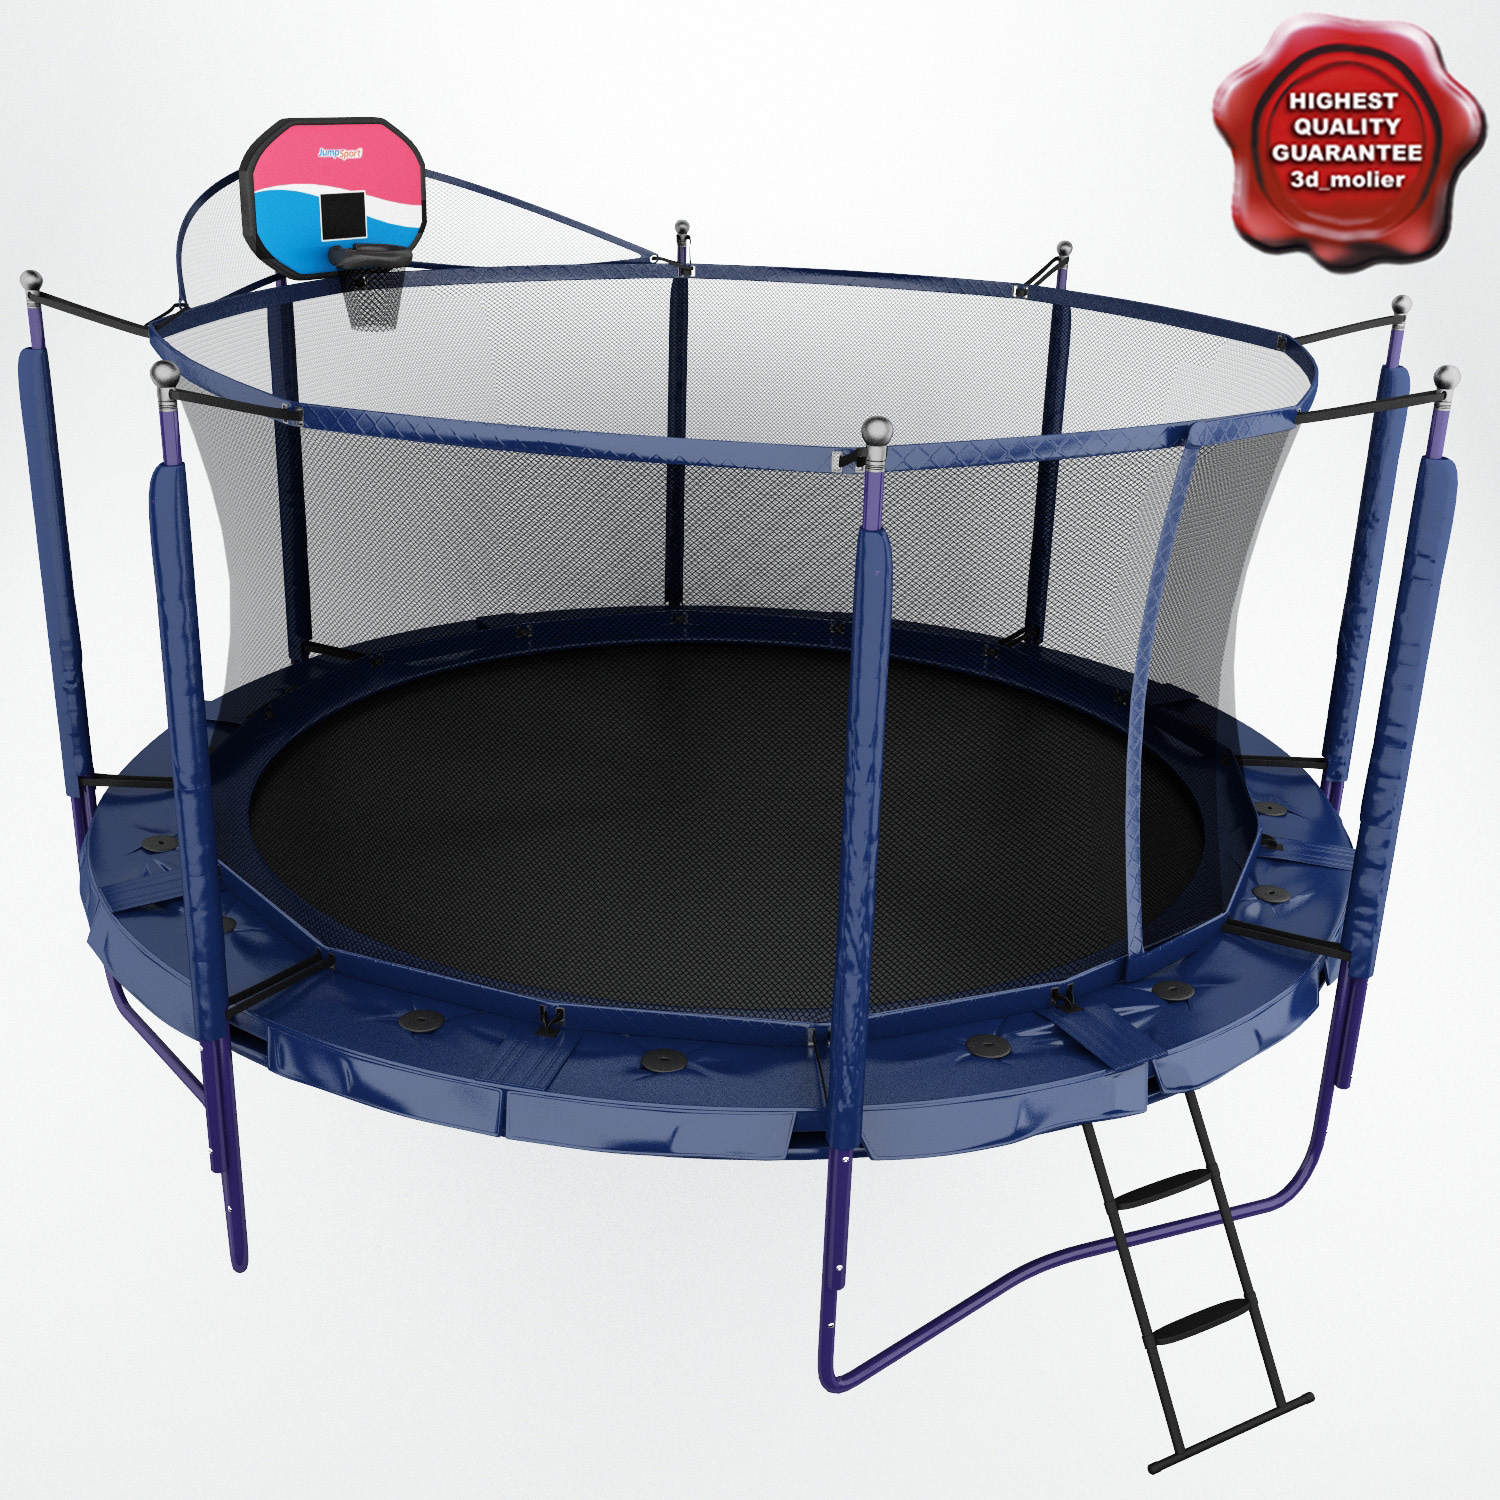 Jumpsport Elite 14 Ft Powerbounce Trampoline With: 3ds Trampoline Jumpsport Elite Js